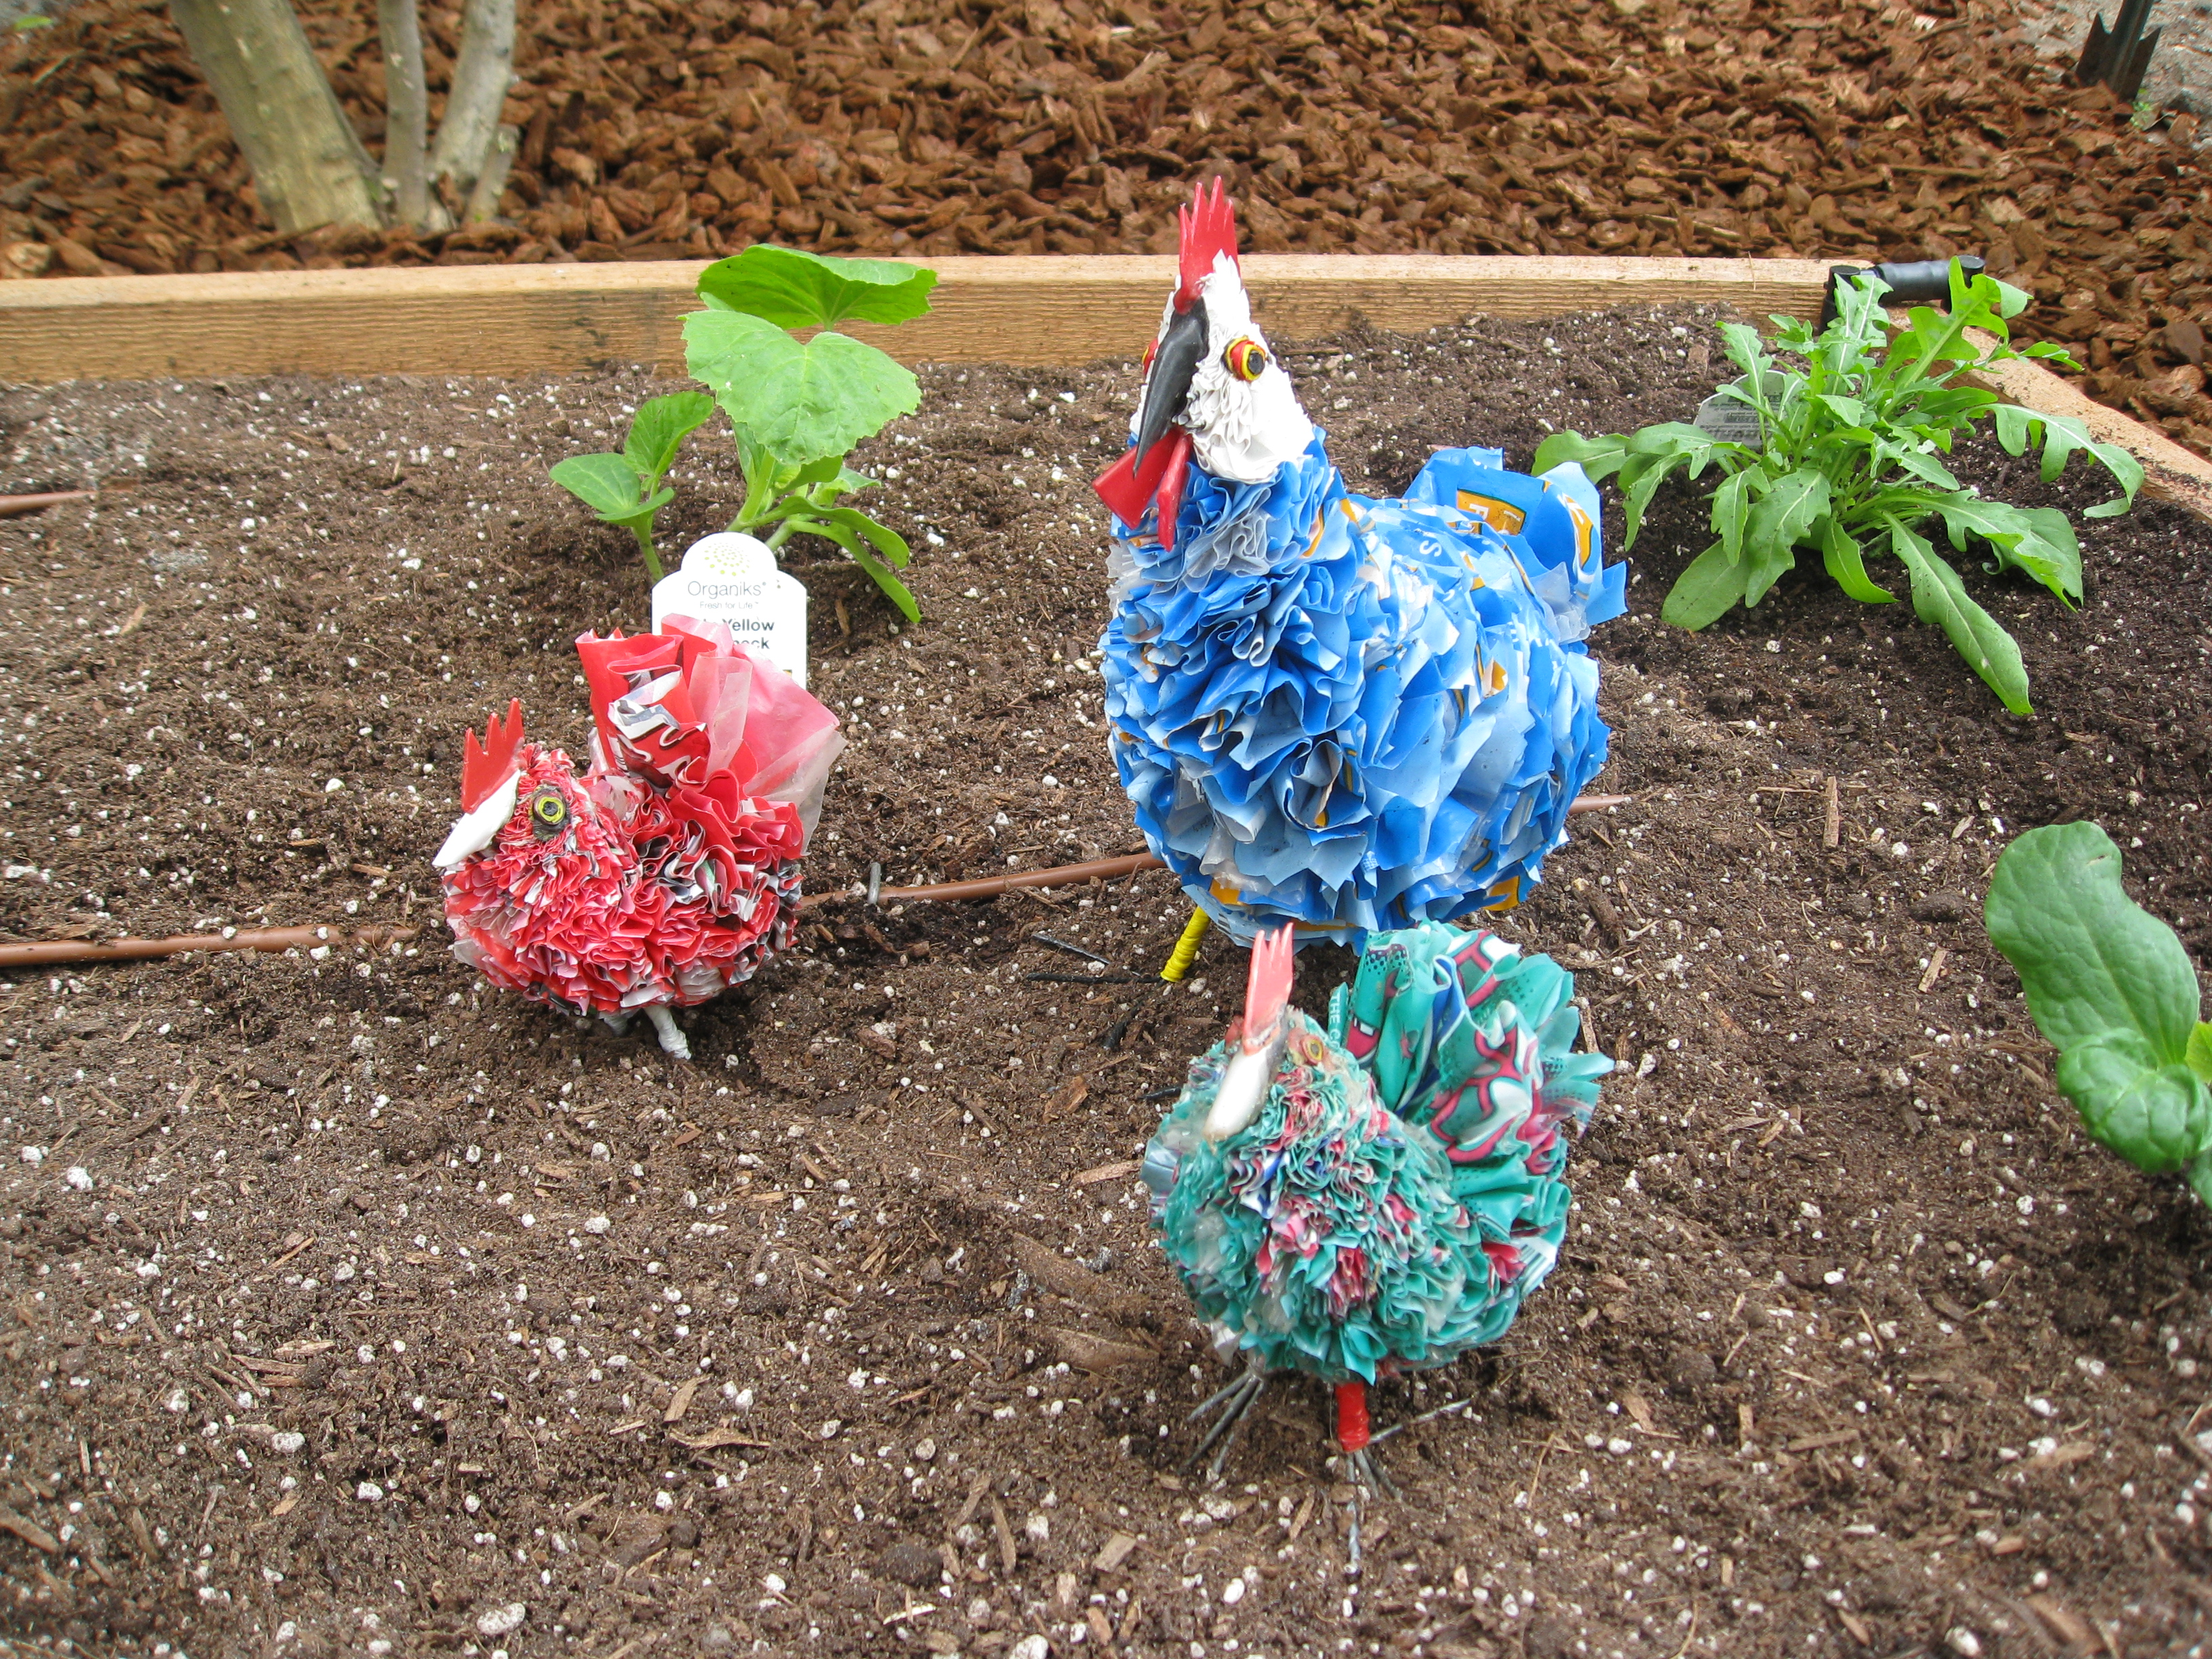 Colorful chickens bring whimsy to the garden